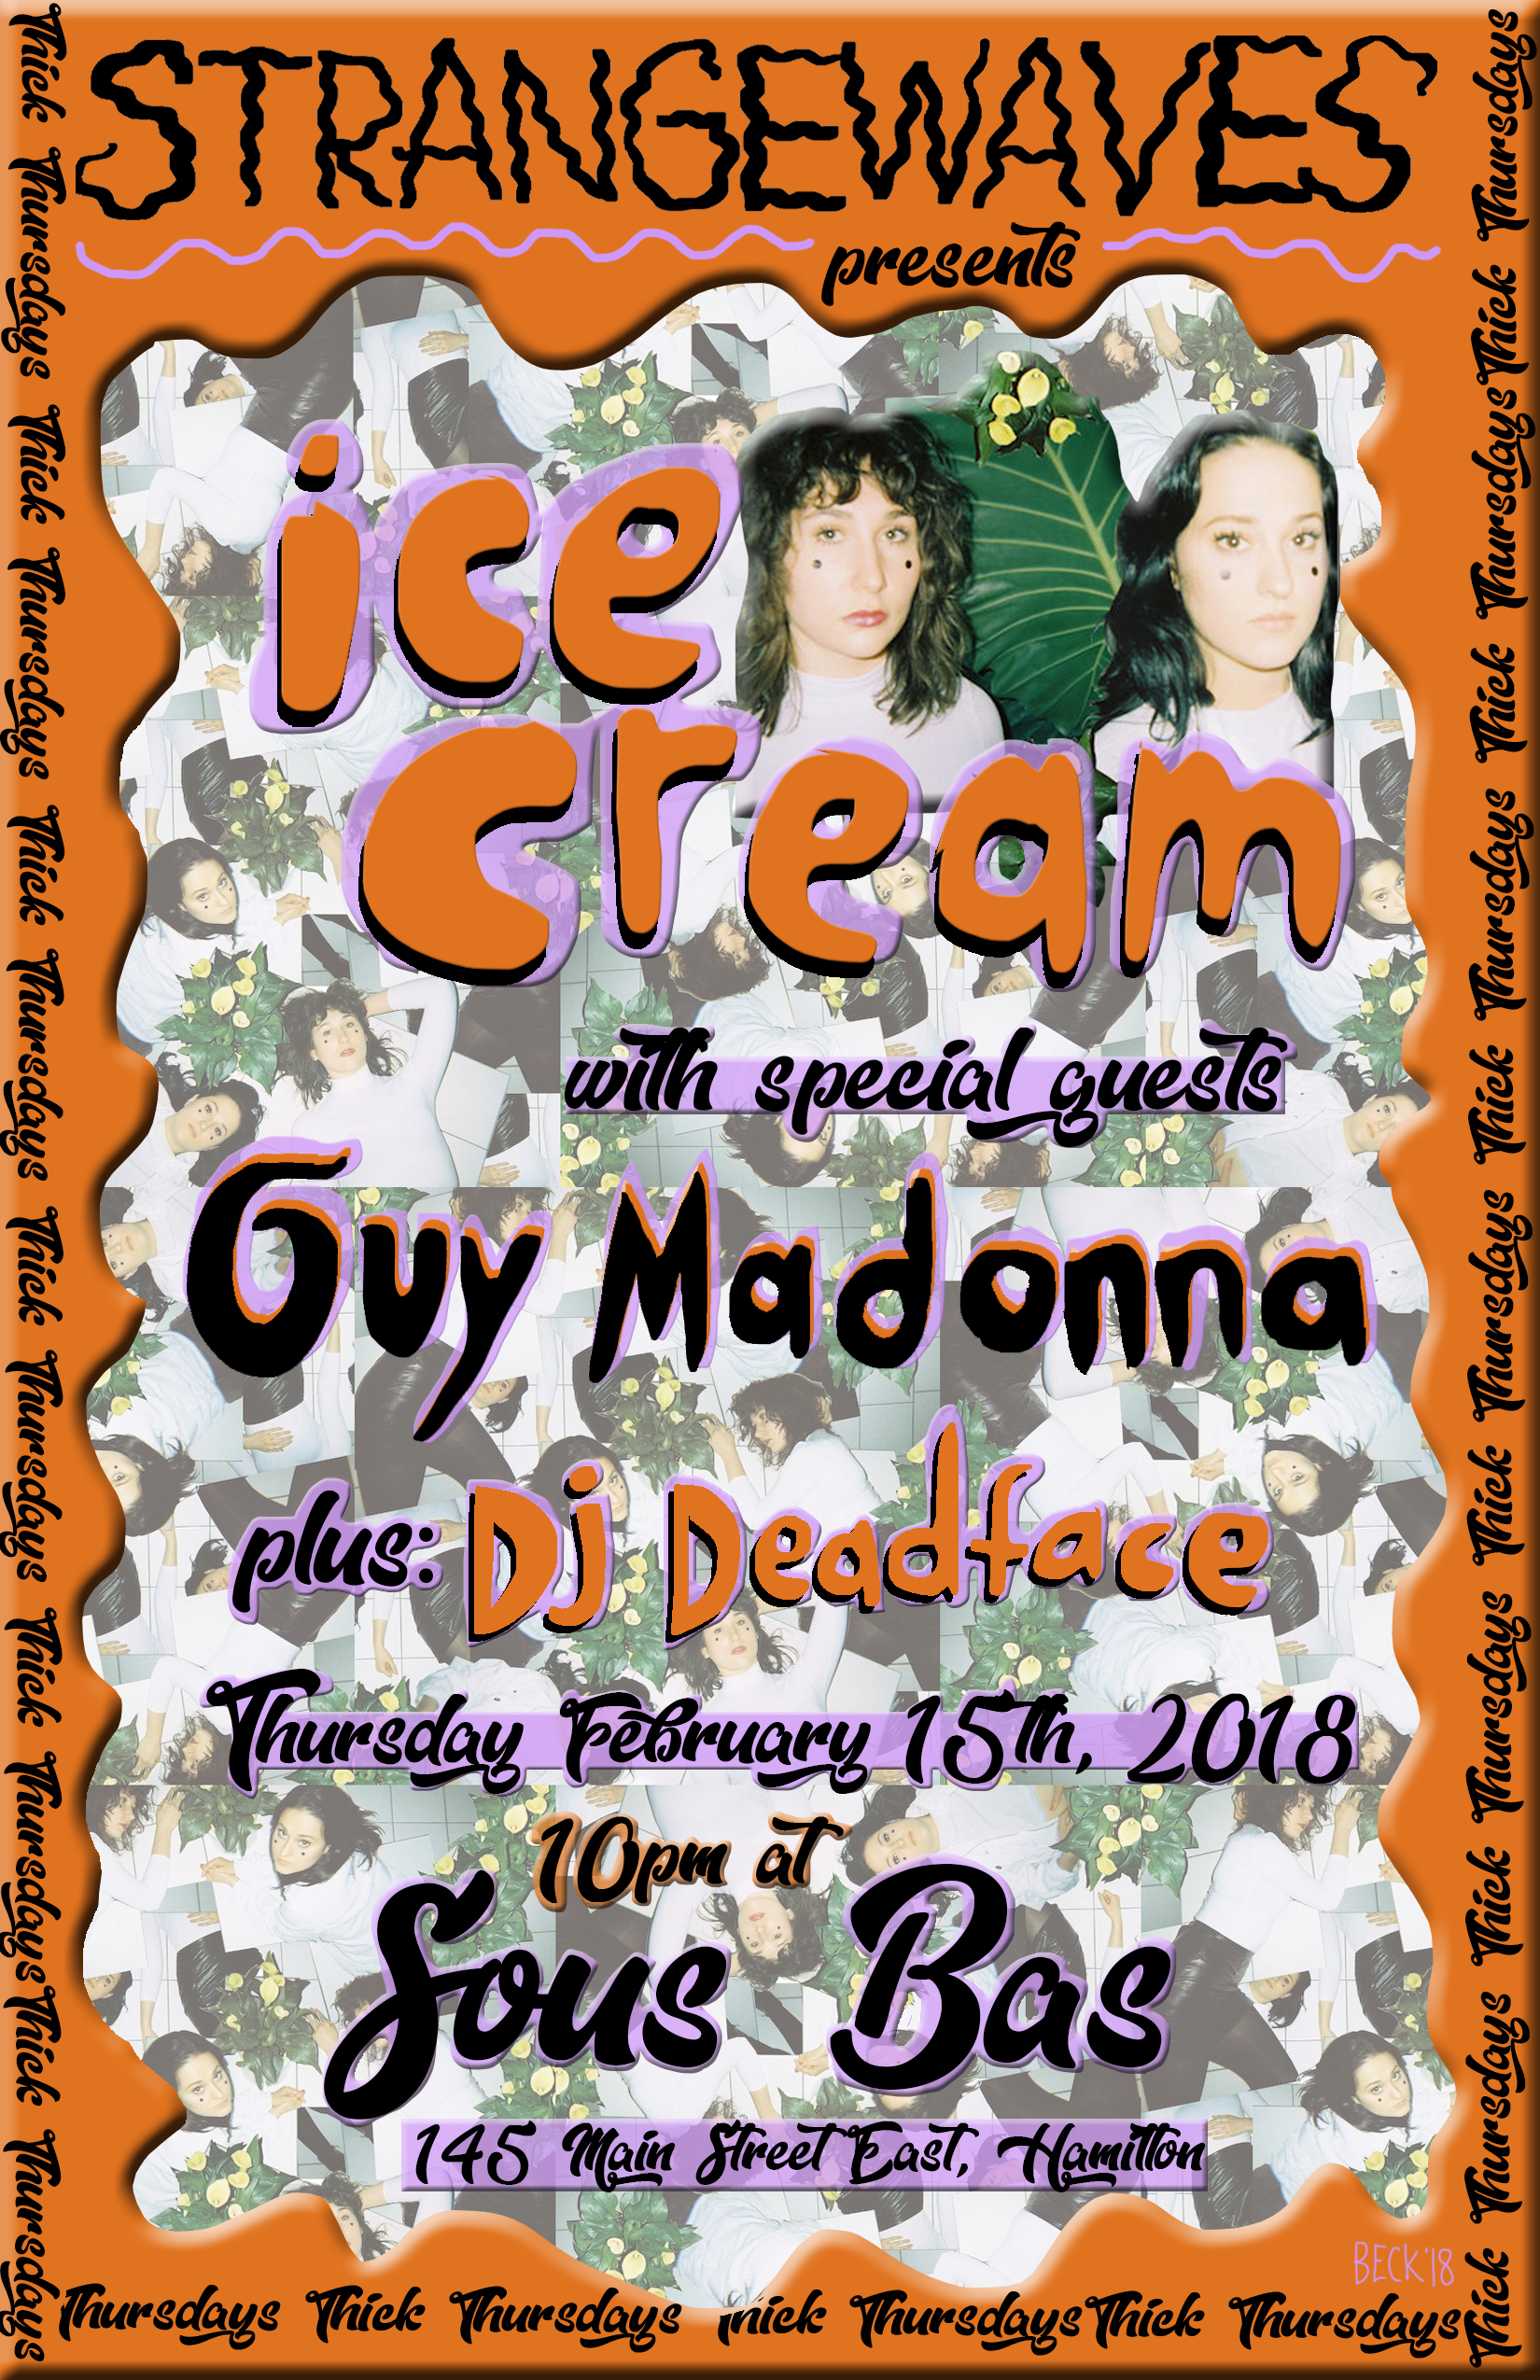 THICK Thursday #2: Ice Cream, Guy Madonna, DJ Deadface  @Sous Bas